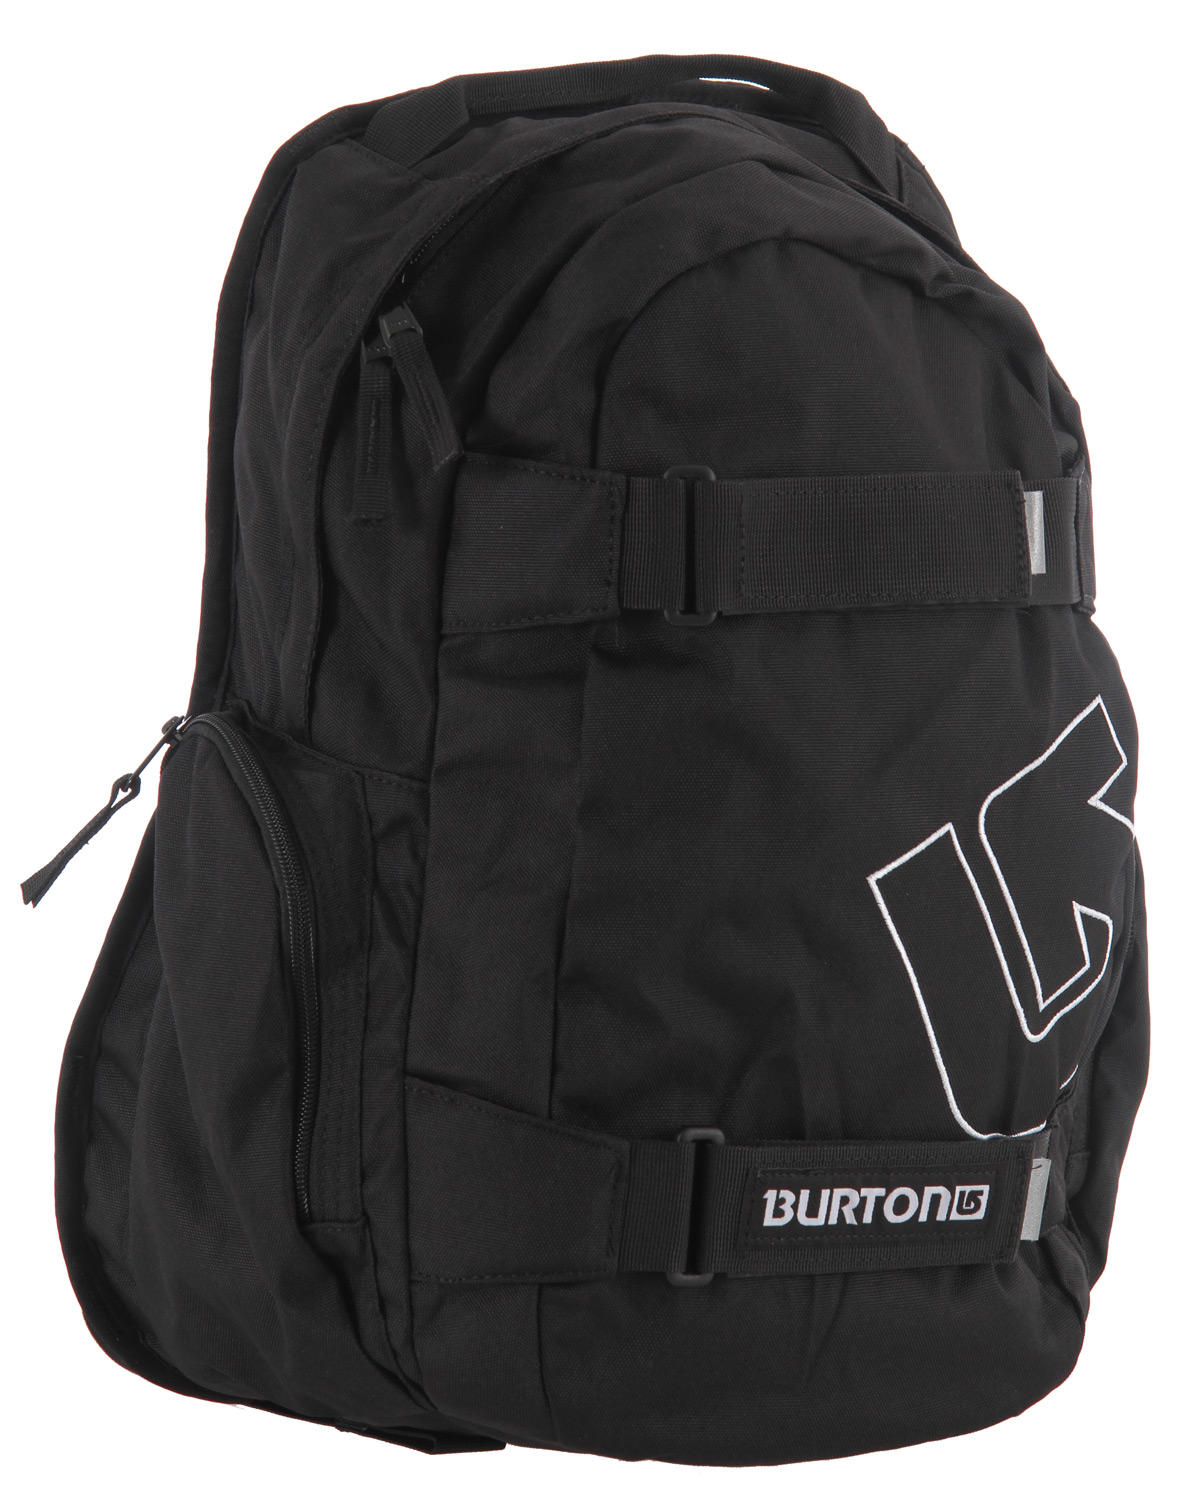 Snowboard Simple skate pack with added bang for your buck - the Burton Treble Yell Backpack.Key Features of the Burton Treble Yell Backpack: 23L [17in x 11.5in x 7in] [43cm x 29.25cm x 18cm] Weight: 1.25 lbs [0.57 kg] Fabrication: 600D Polyester / 300D Polyester Dobby Padded Laptop Pocket [14in x 10in x 1in] [35.5cm x 25.5cm x 2.5cm] Vertical Skate Carry Cush Ergonomic Shoulder Harness - $20.95